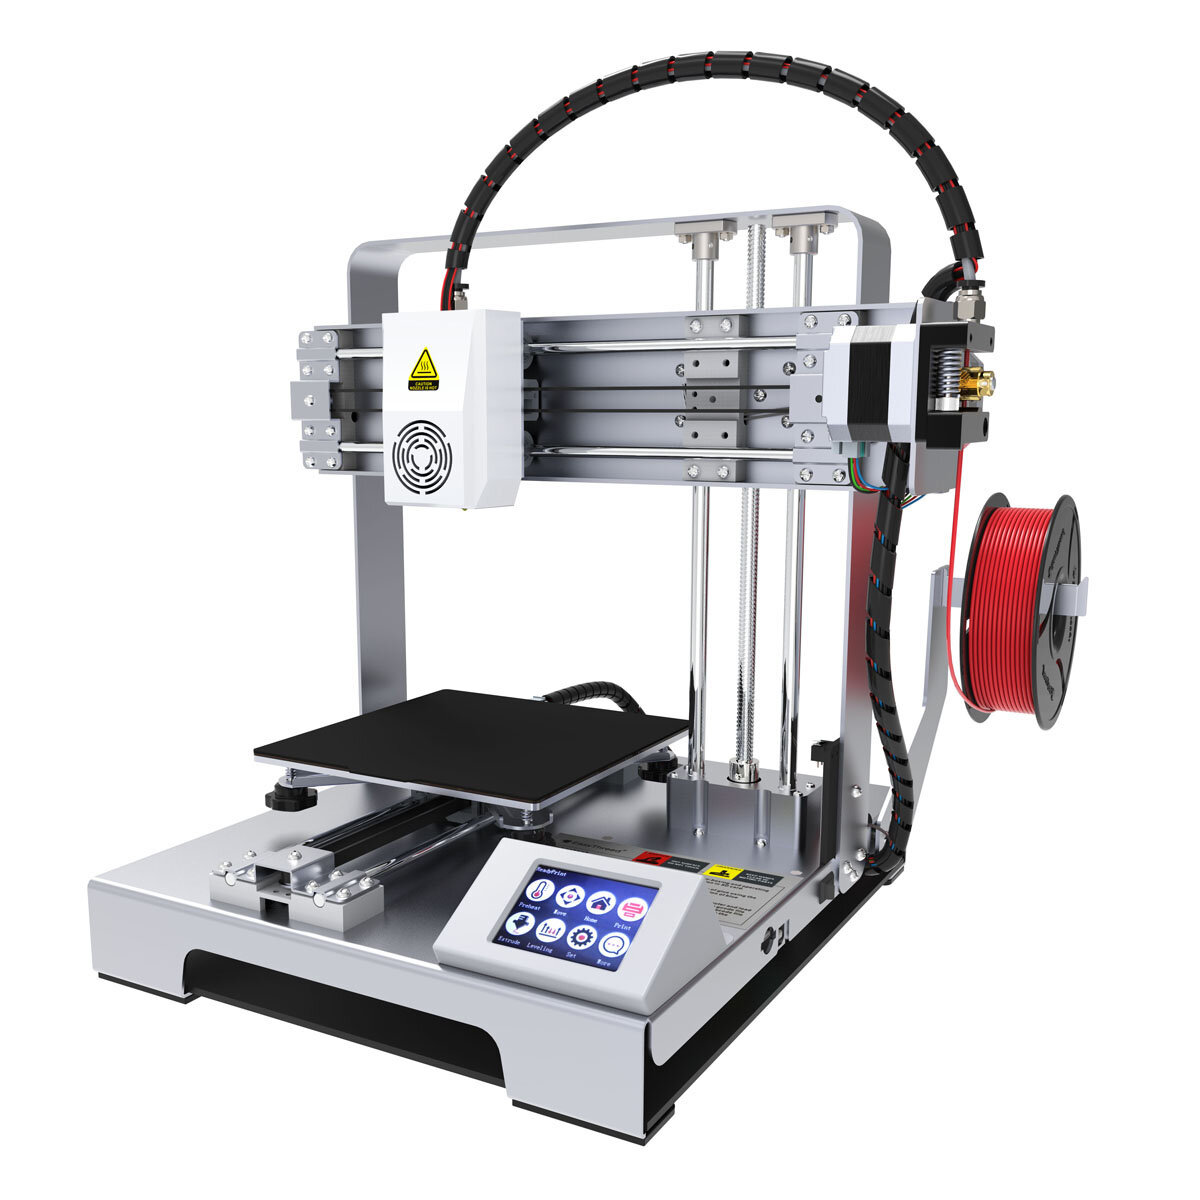 Wholesale Easythreed X6 Desktop Portable DIY 3D Printer Kit 140*140*140mm Print Size with Hotbed 1.75mm 0.4mm Nozzle